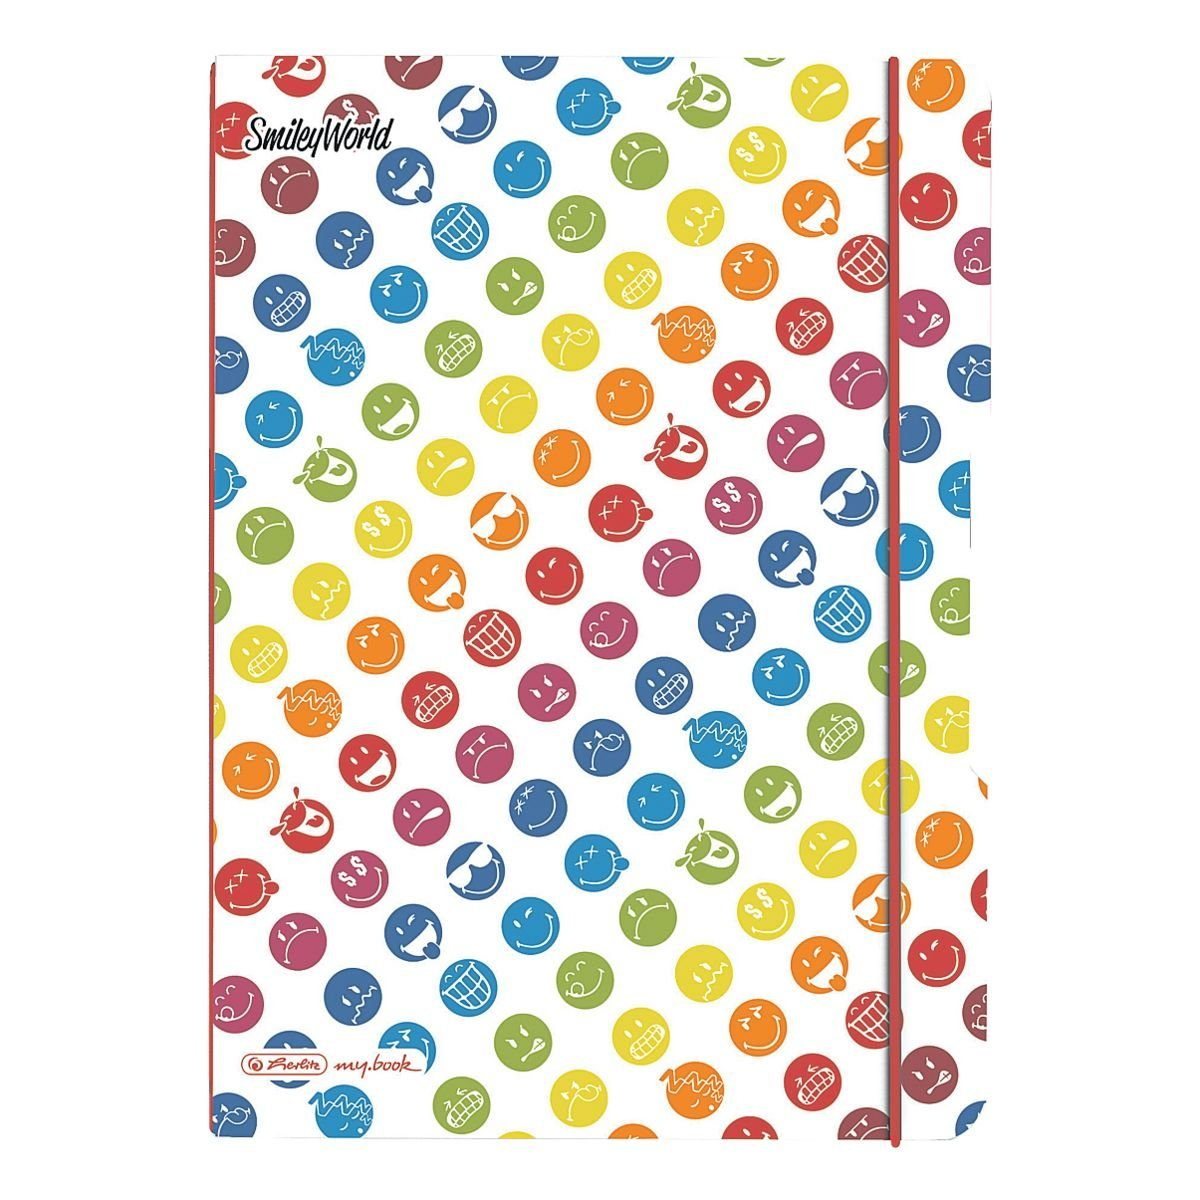 Herlitz Notizheft my.book flex »SmileyWorld Rainbow«